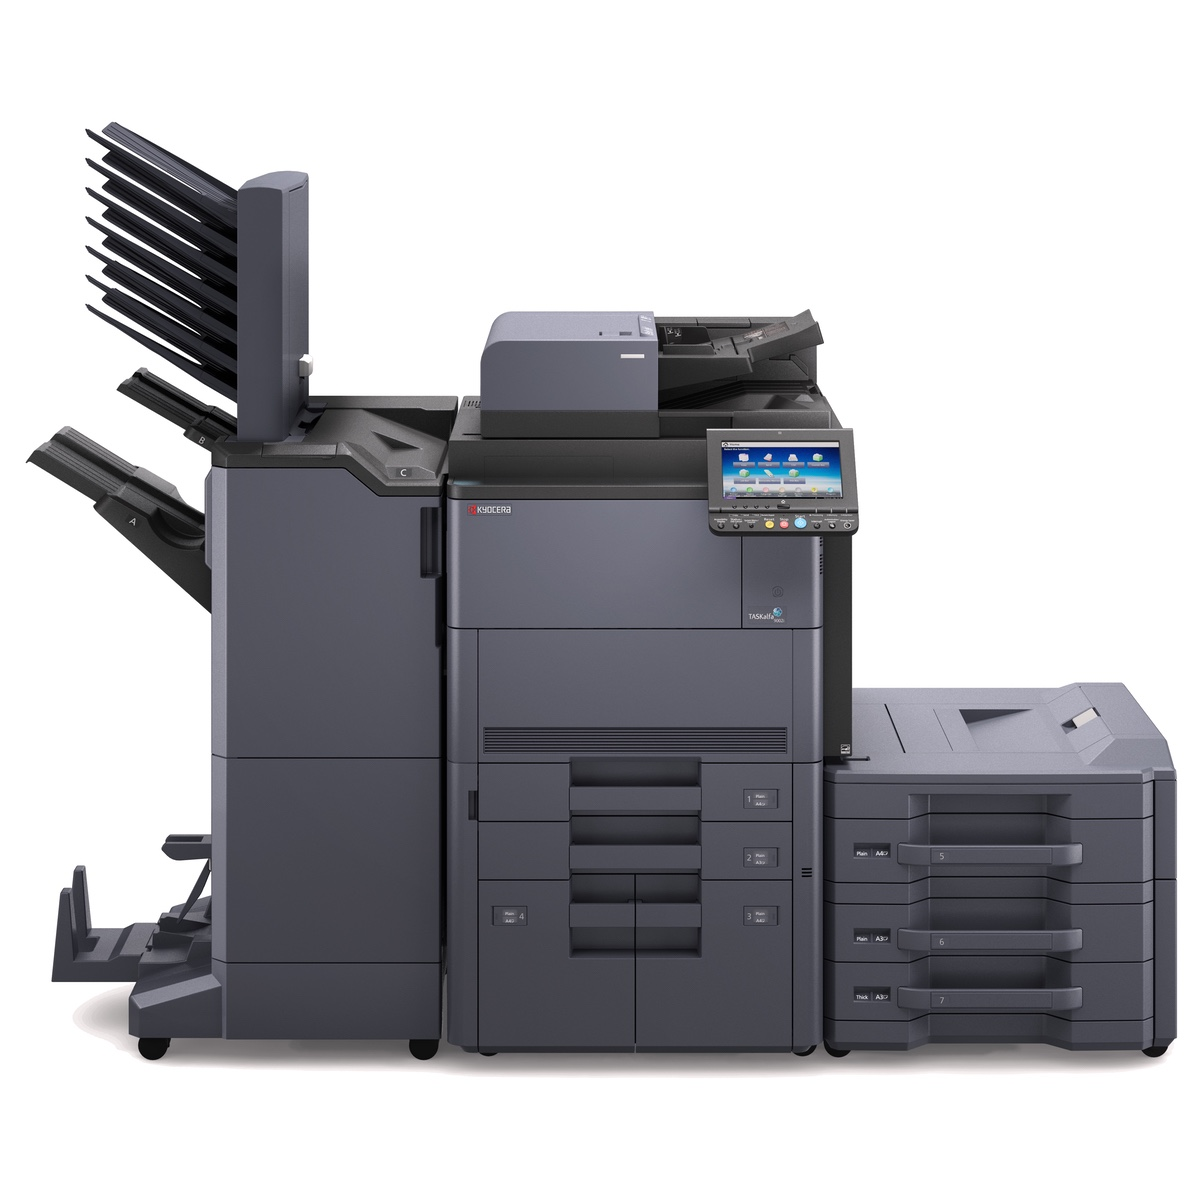 Kyocera Copiers:  The Kyocera TASKalfa 9002i Copier